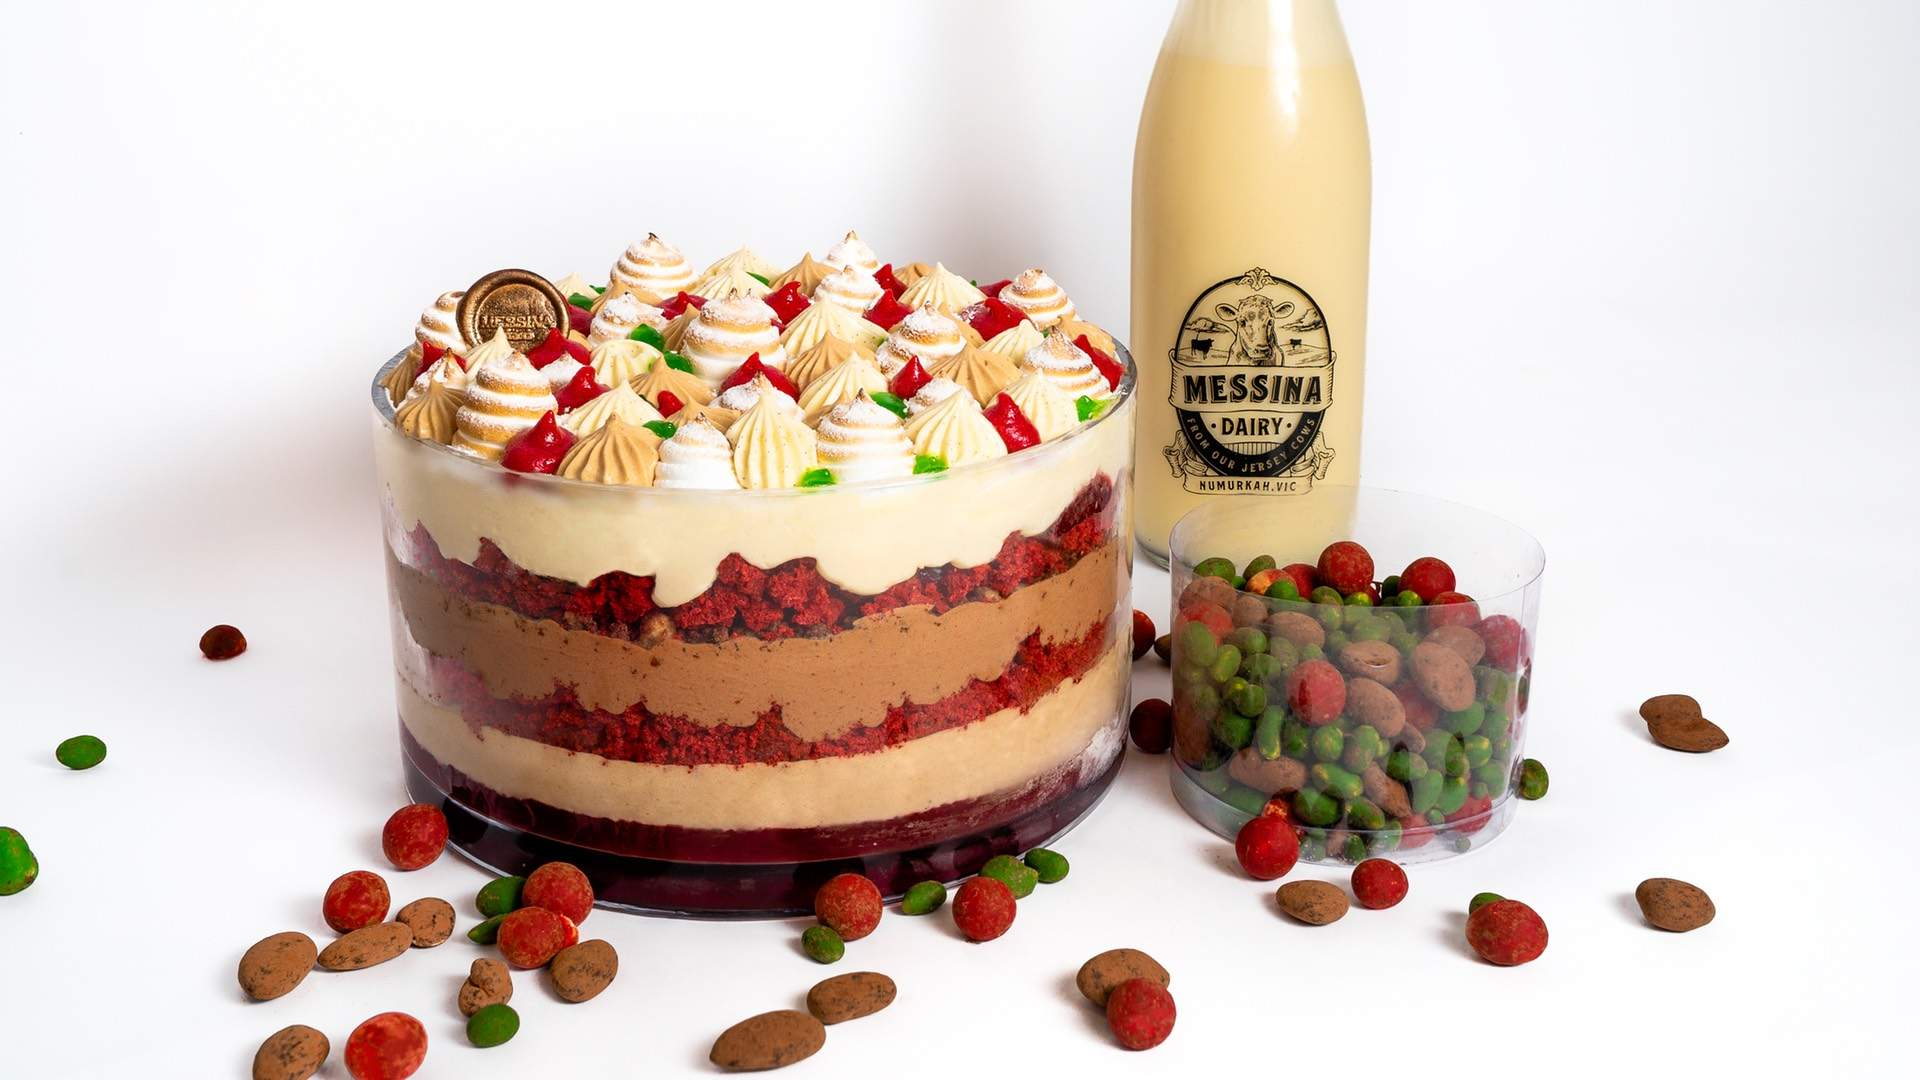 Gelato Messina Is Releasing Another Trifle to Take Your Christmas Lunch to the Next Level